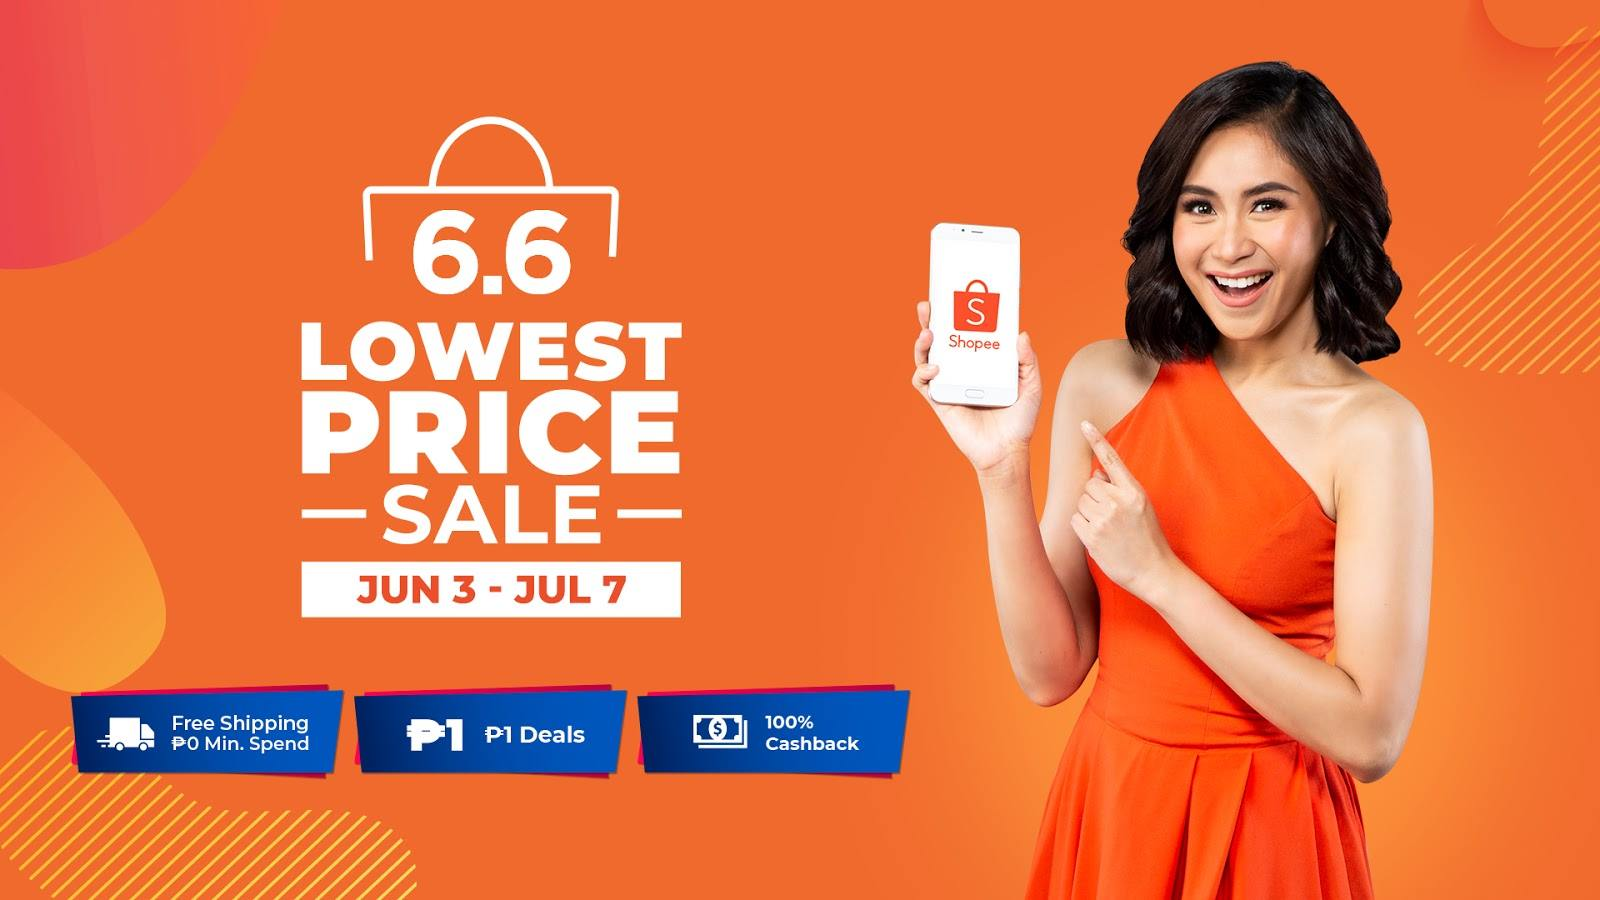 Shopee reveals Sarah Geronimo as new brand ambassador in time for Shopee 6.6 - 7.7 Lowest Price Sale